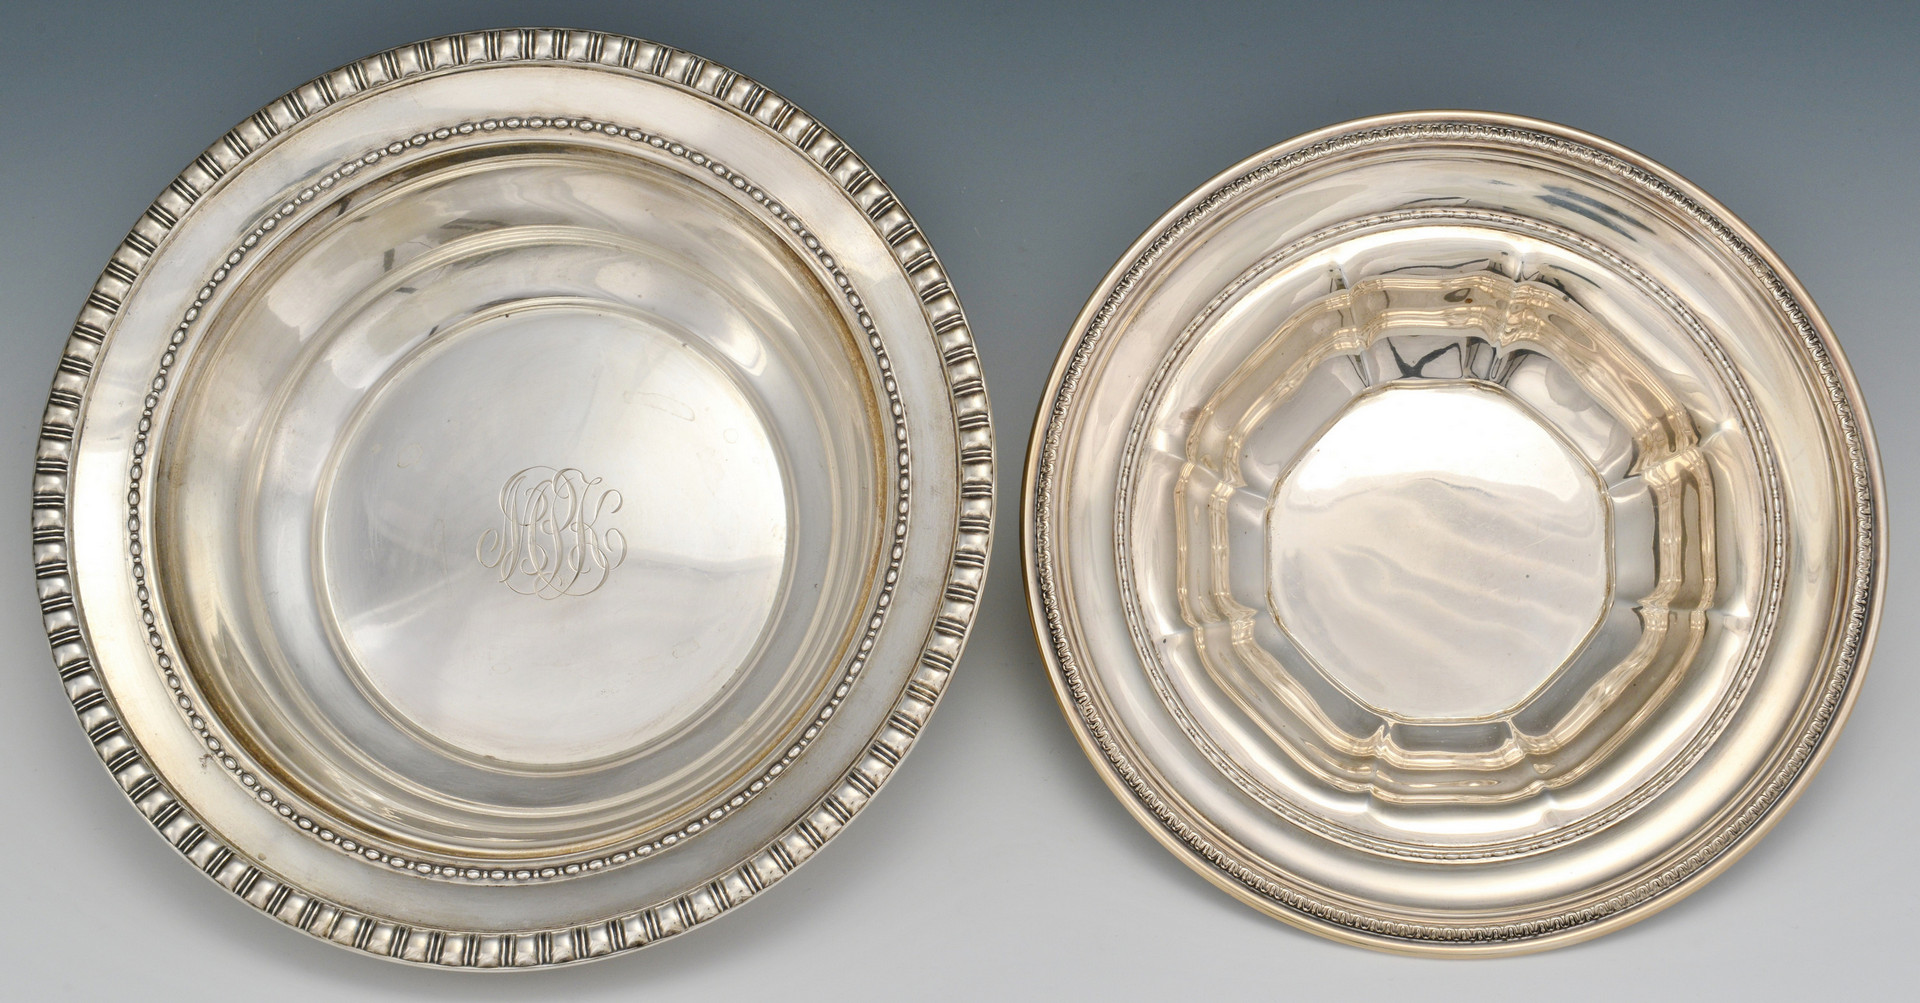 Lot 518: 4 pcs Sterling Silver Hollowware